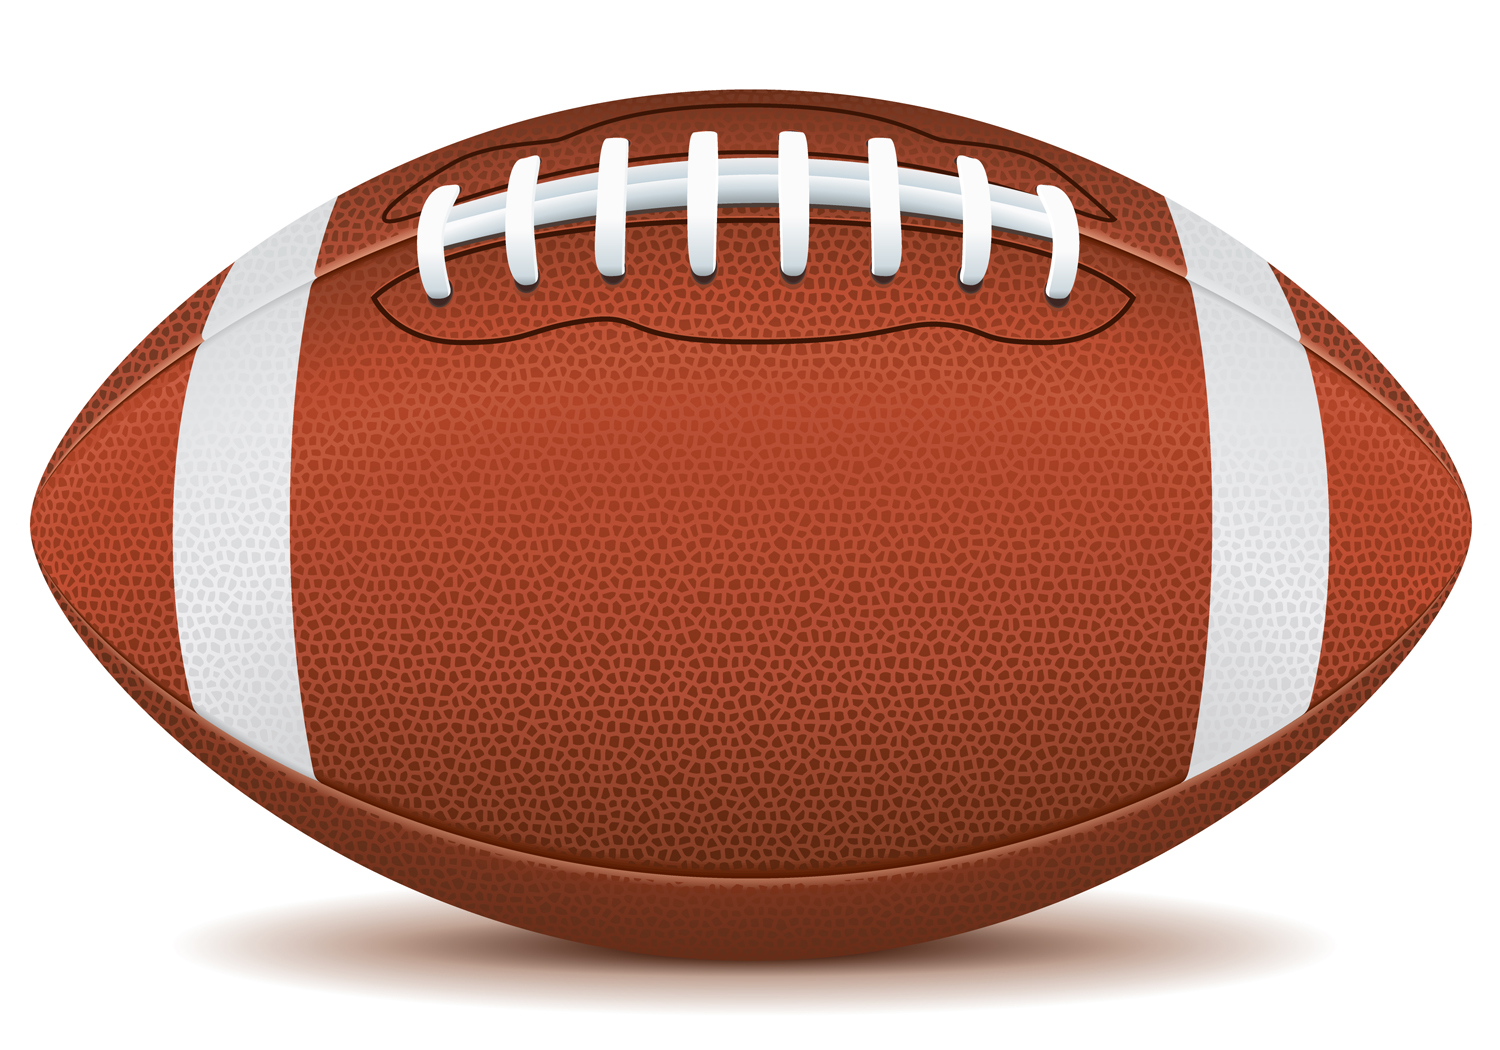 1500x1050 Football Ball Clipart Clipart Panda